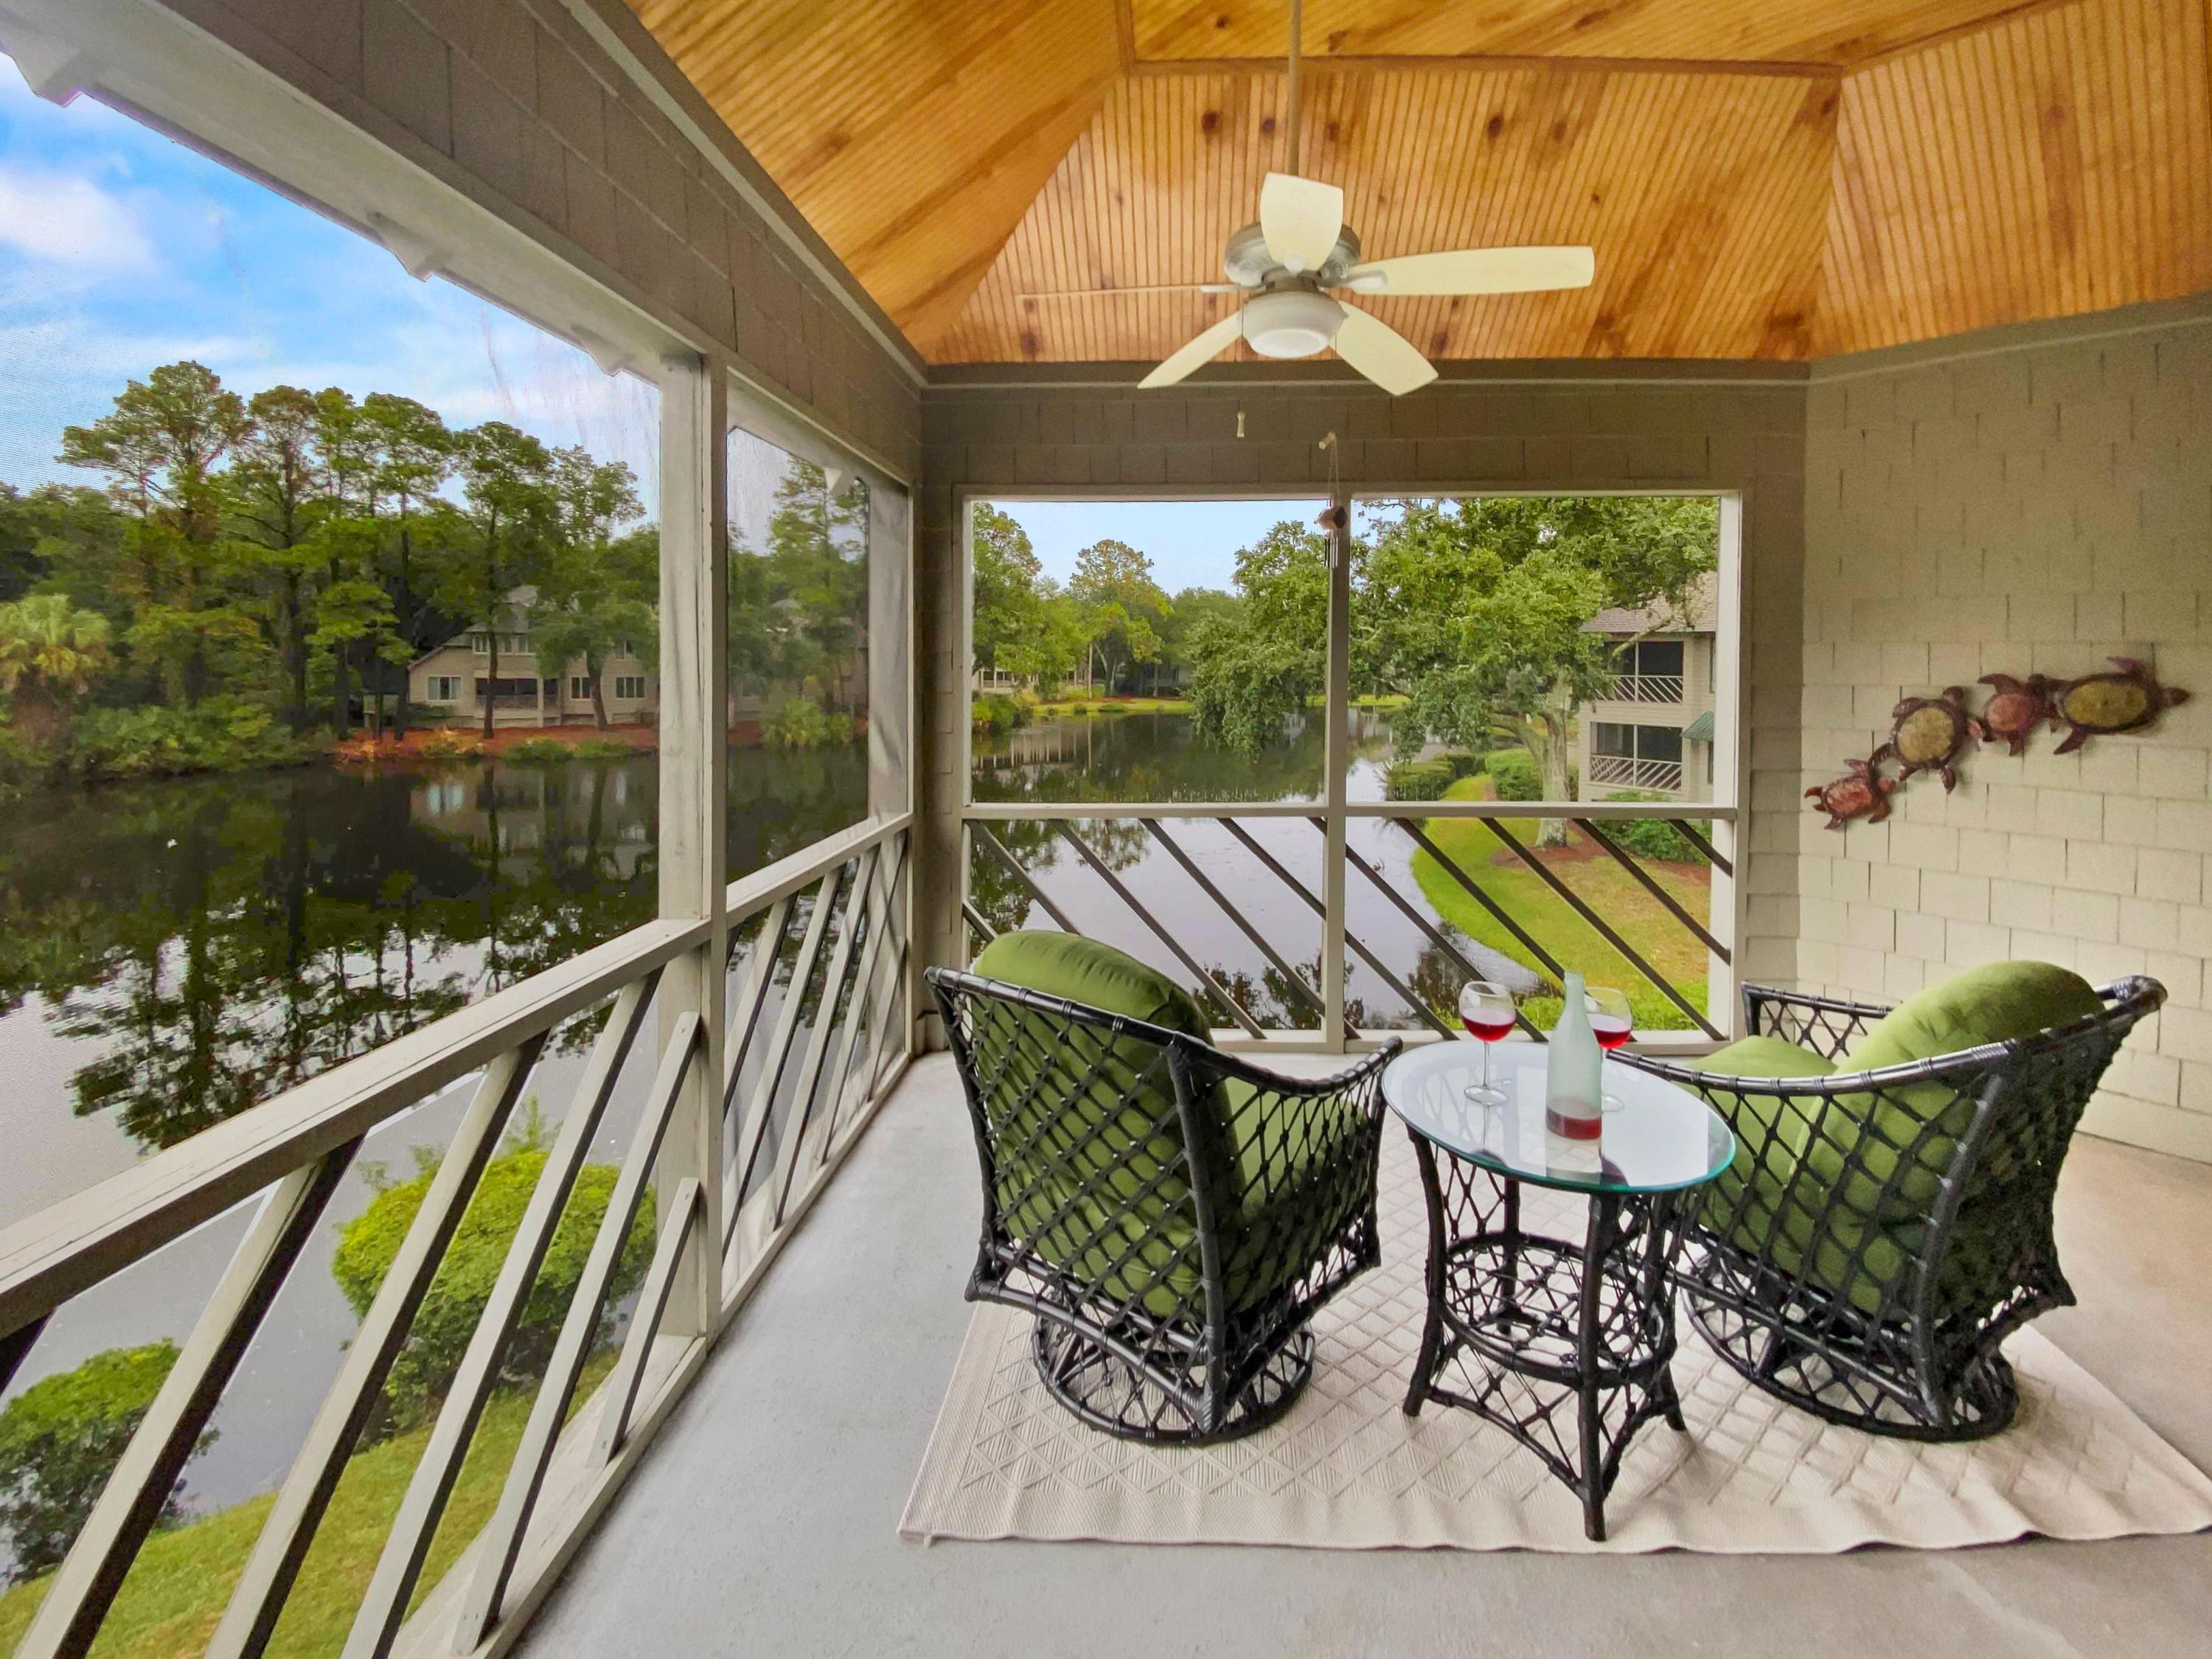 Kiawah Island Condos For Sale - 4676 Tennis Club Villas, Kiawah Island, SC - 15